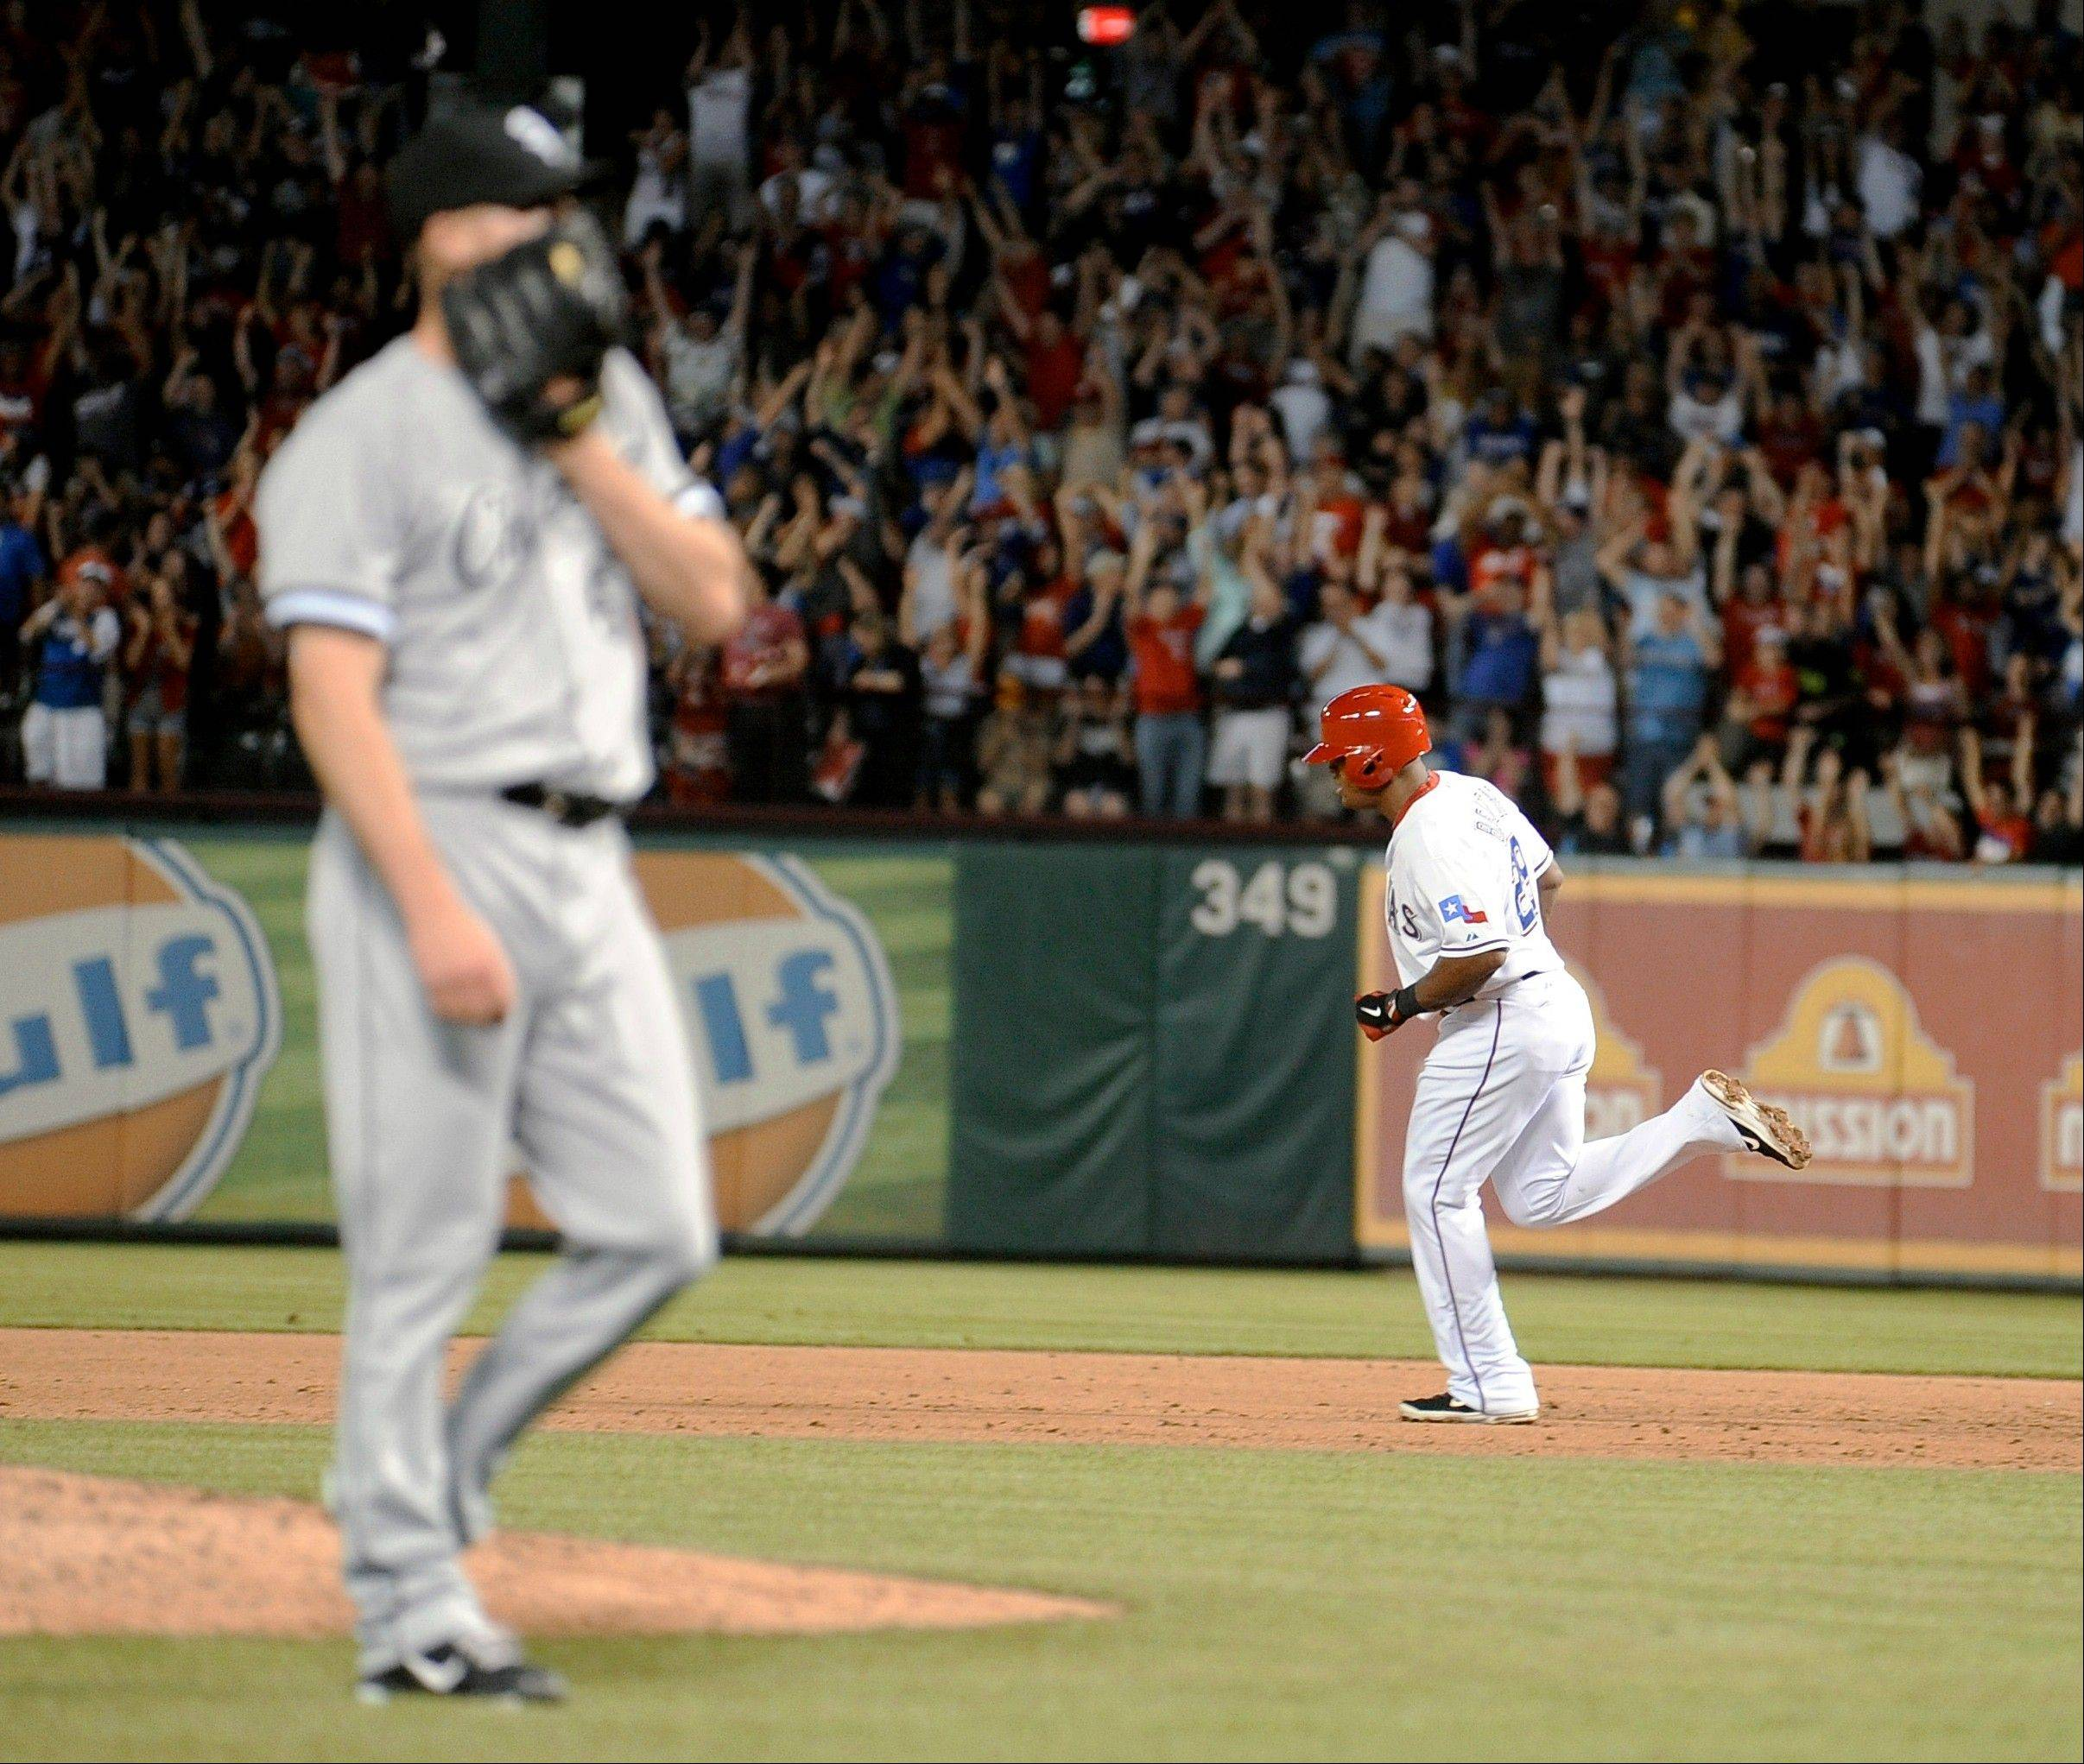 The Rangers' Adrian Beltre rounds the bases as Chicago White Sox relief pitcher Nate Jones reacts to giving up a two-run home run in the sixth inning Tuesday in Arlington, Texas.